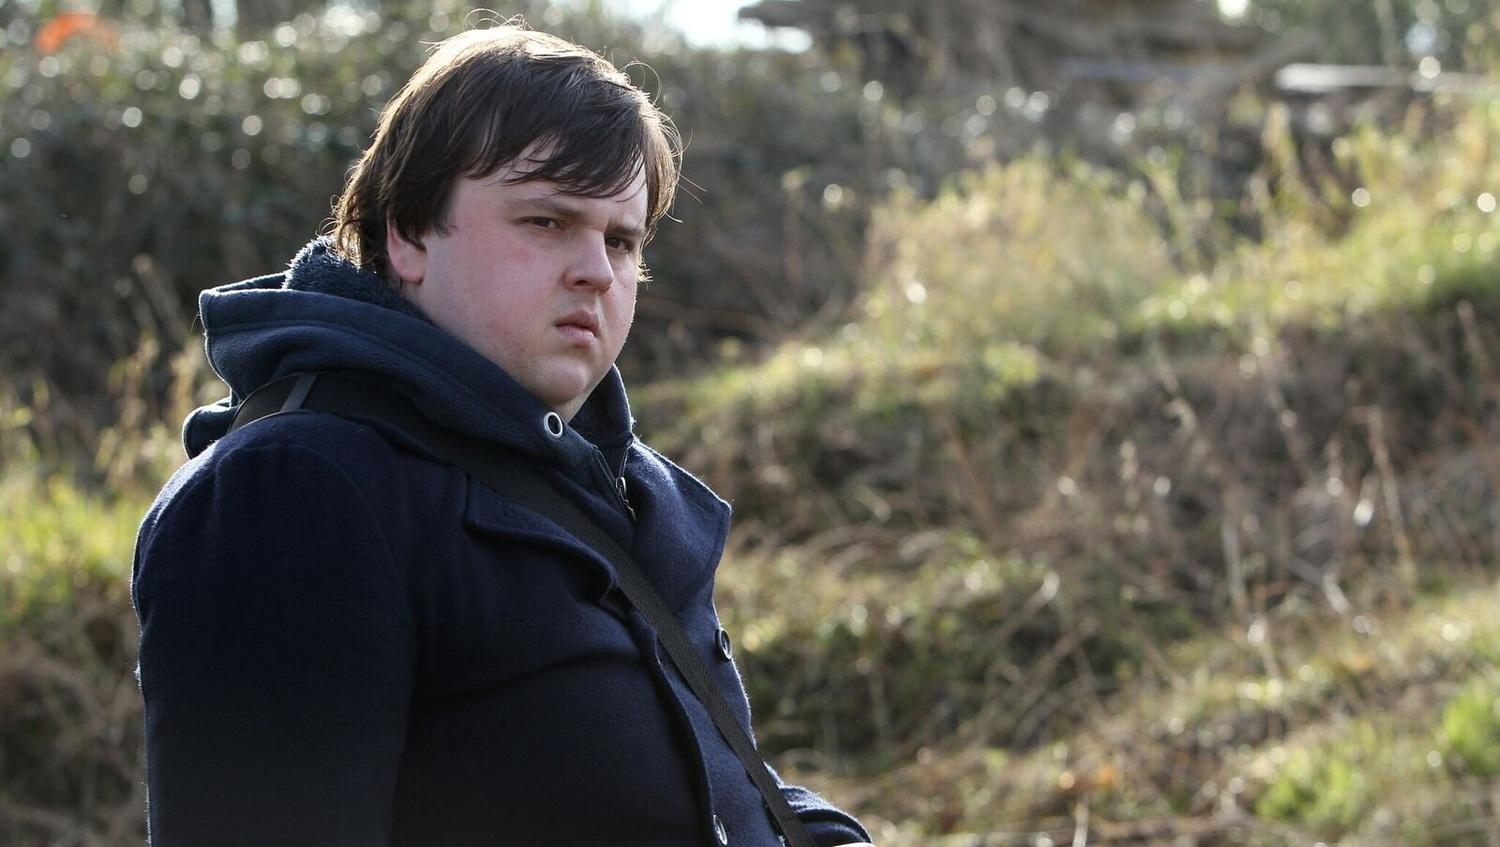 john bradley american pickersjohn bradley instagram, john bradley west, john bradley game of thrones, john bradley weight loss, john bradley artist, john bradley football, john bradley robin, john bradley commentator, john bradley twitter, john bradley west twitter, john bradley west manchester, john bradley, john bradley wwe, john bradley actor, john bradley-west wwe, john bradley ubs, john bradley hannah murray, john bradley west girlfriend, john bradley mode, john bradley american pickers